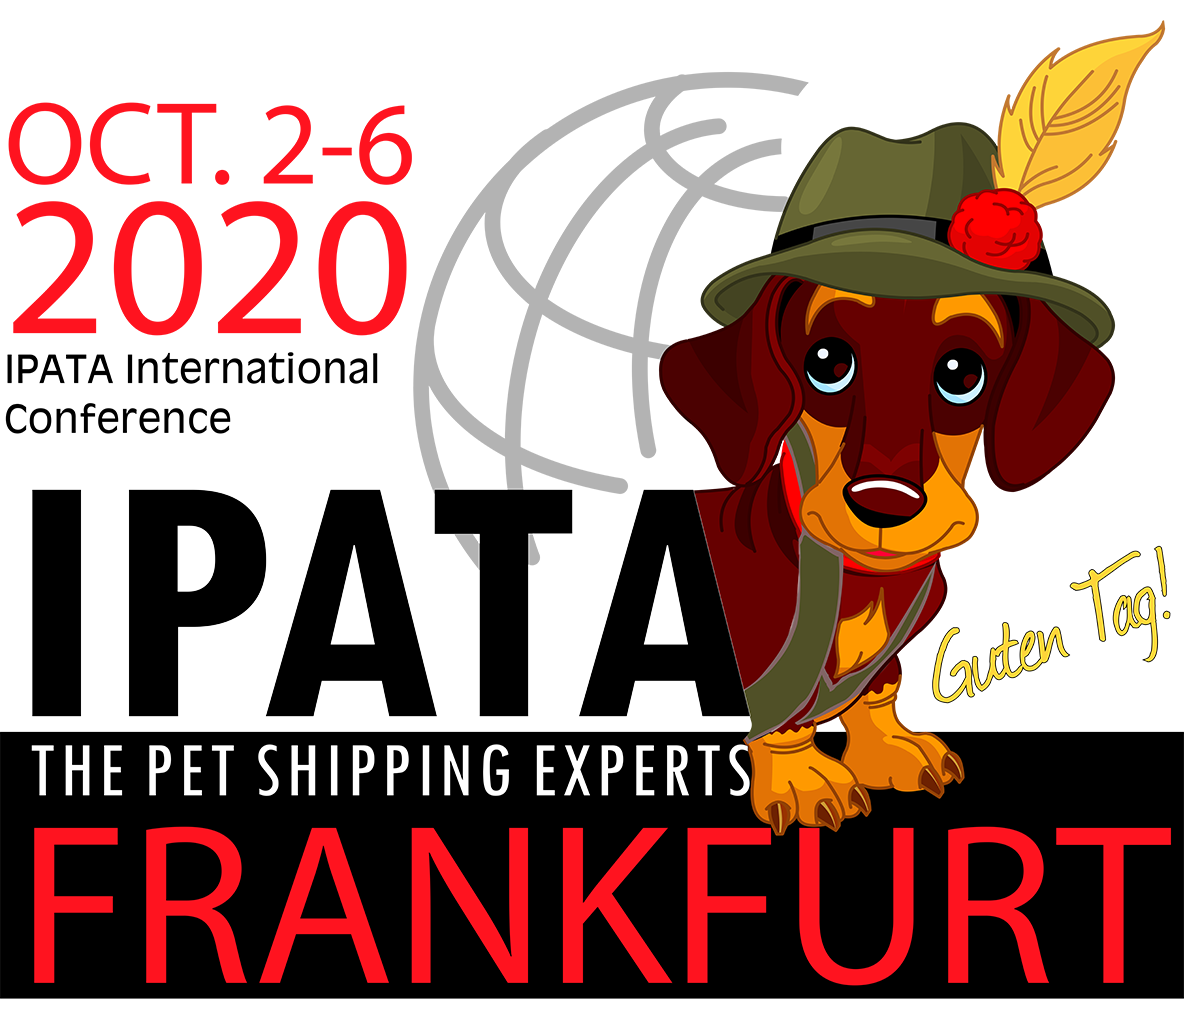 IPATA Frankfurt Conference 2020 for Professional Pet Shippers